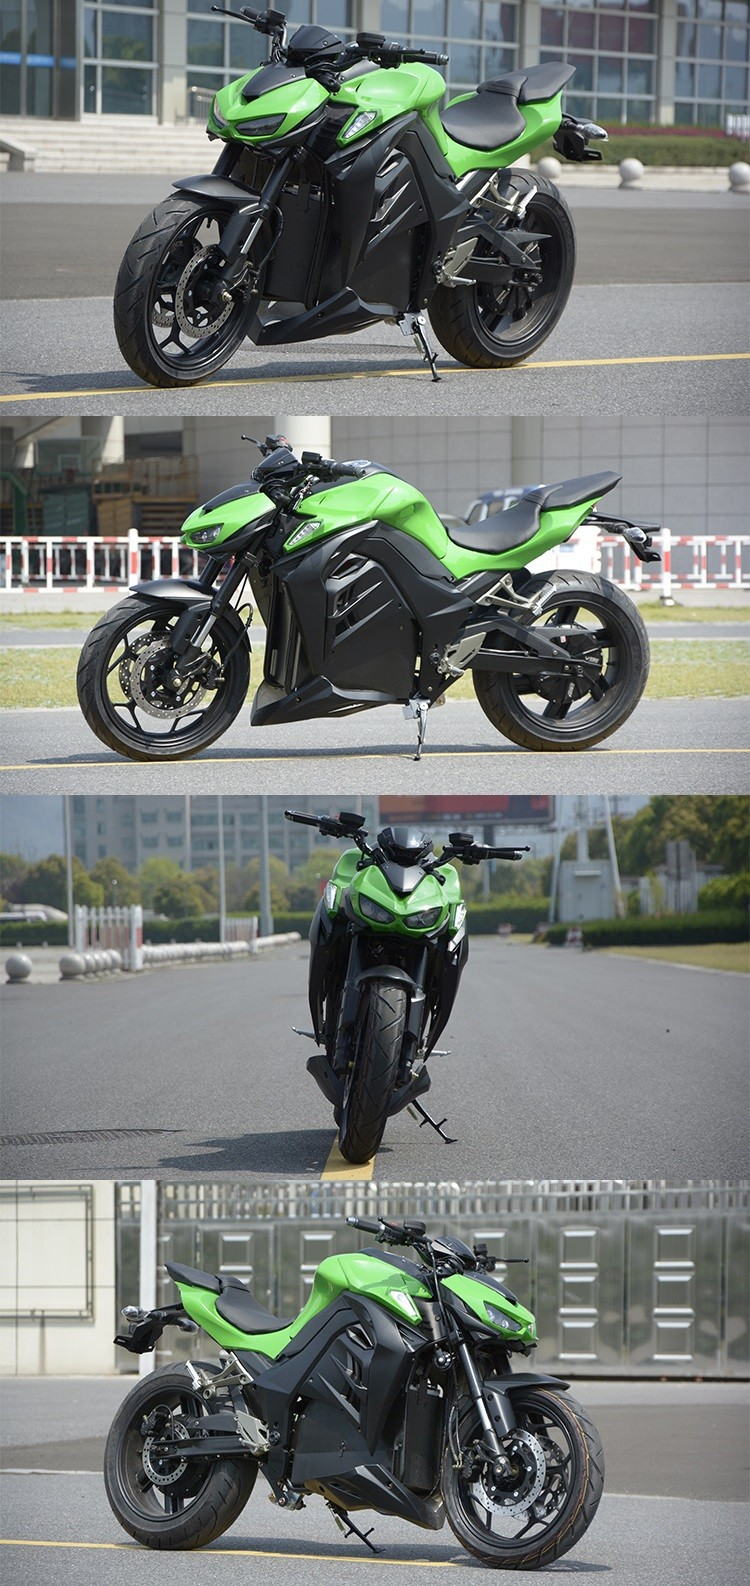 Kawasaki Electric Motorcycle Sur Ron Bee With Cheap Price ...